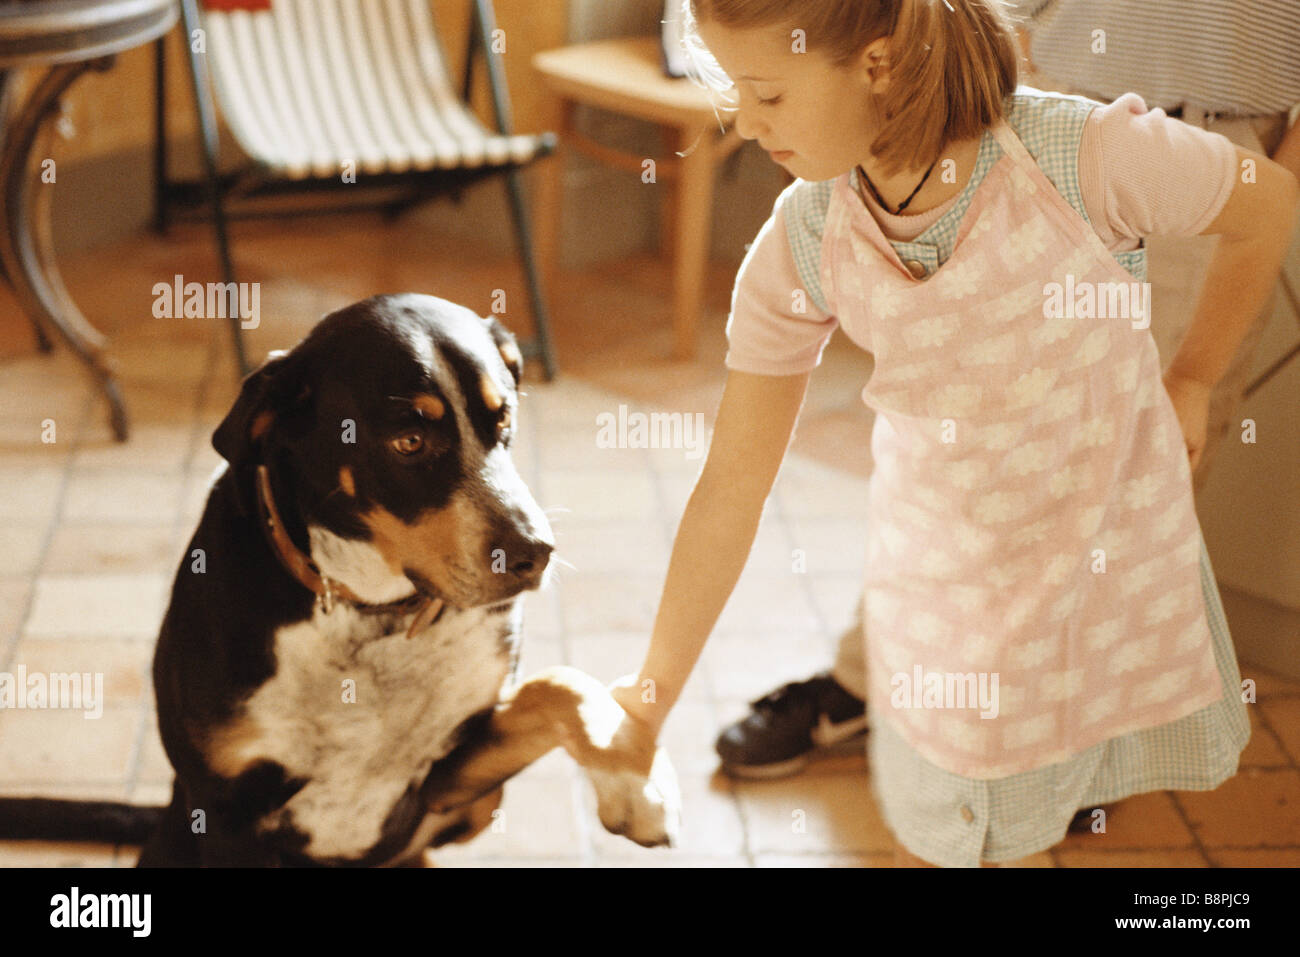 Girl shaking dog's paw - Stock Image